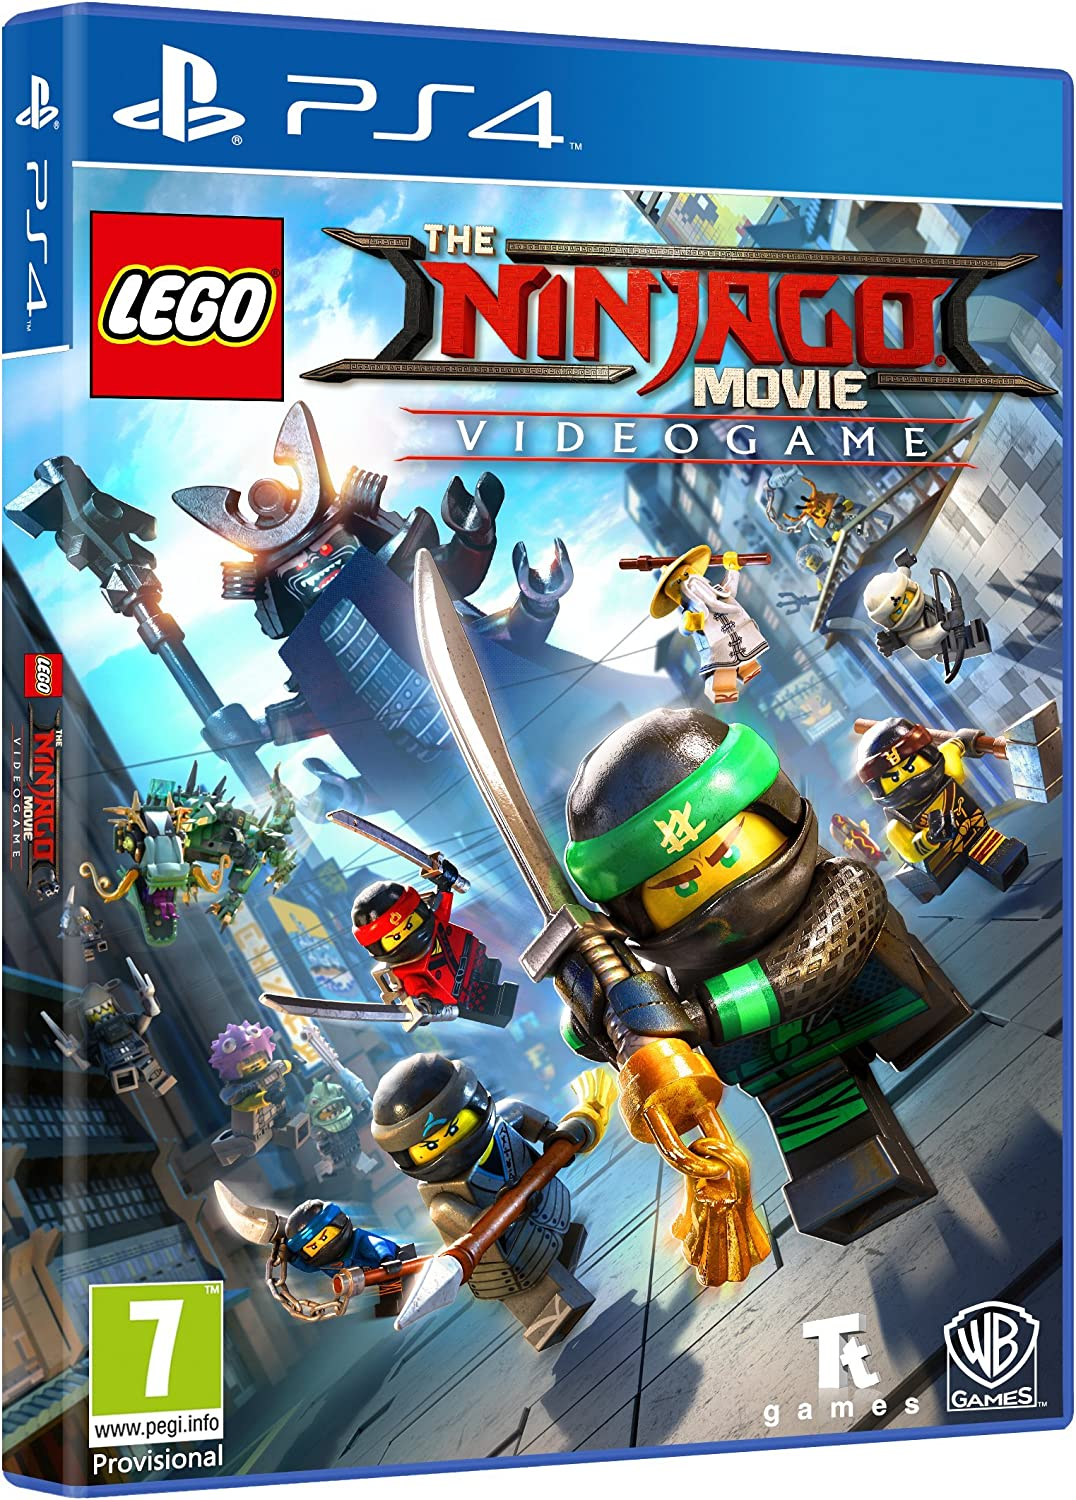 Lego The Ninjago Movie: Videogame: Amazon.es: Videojuegos